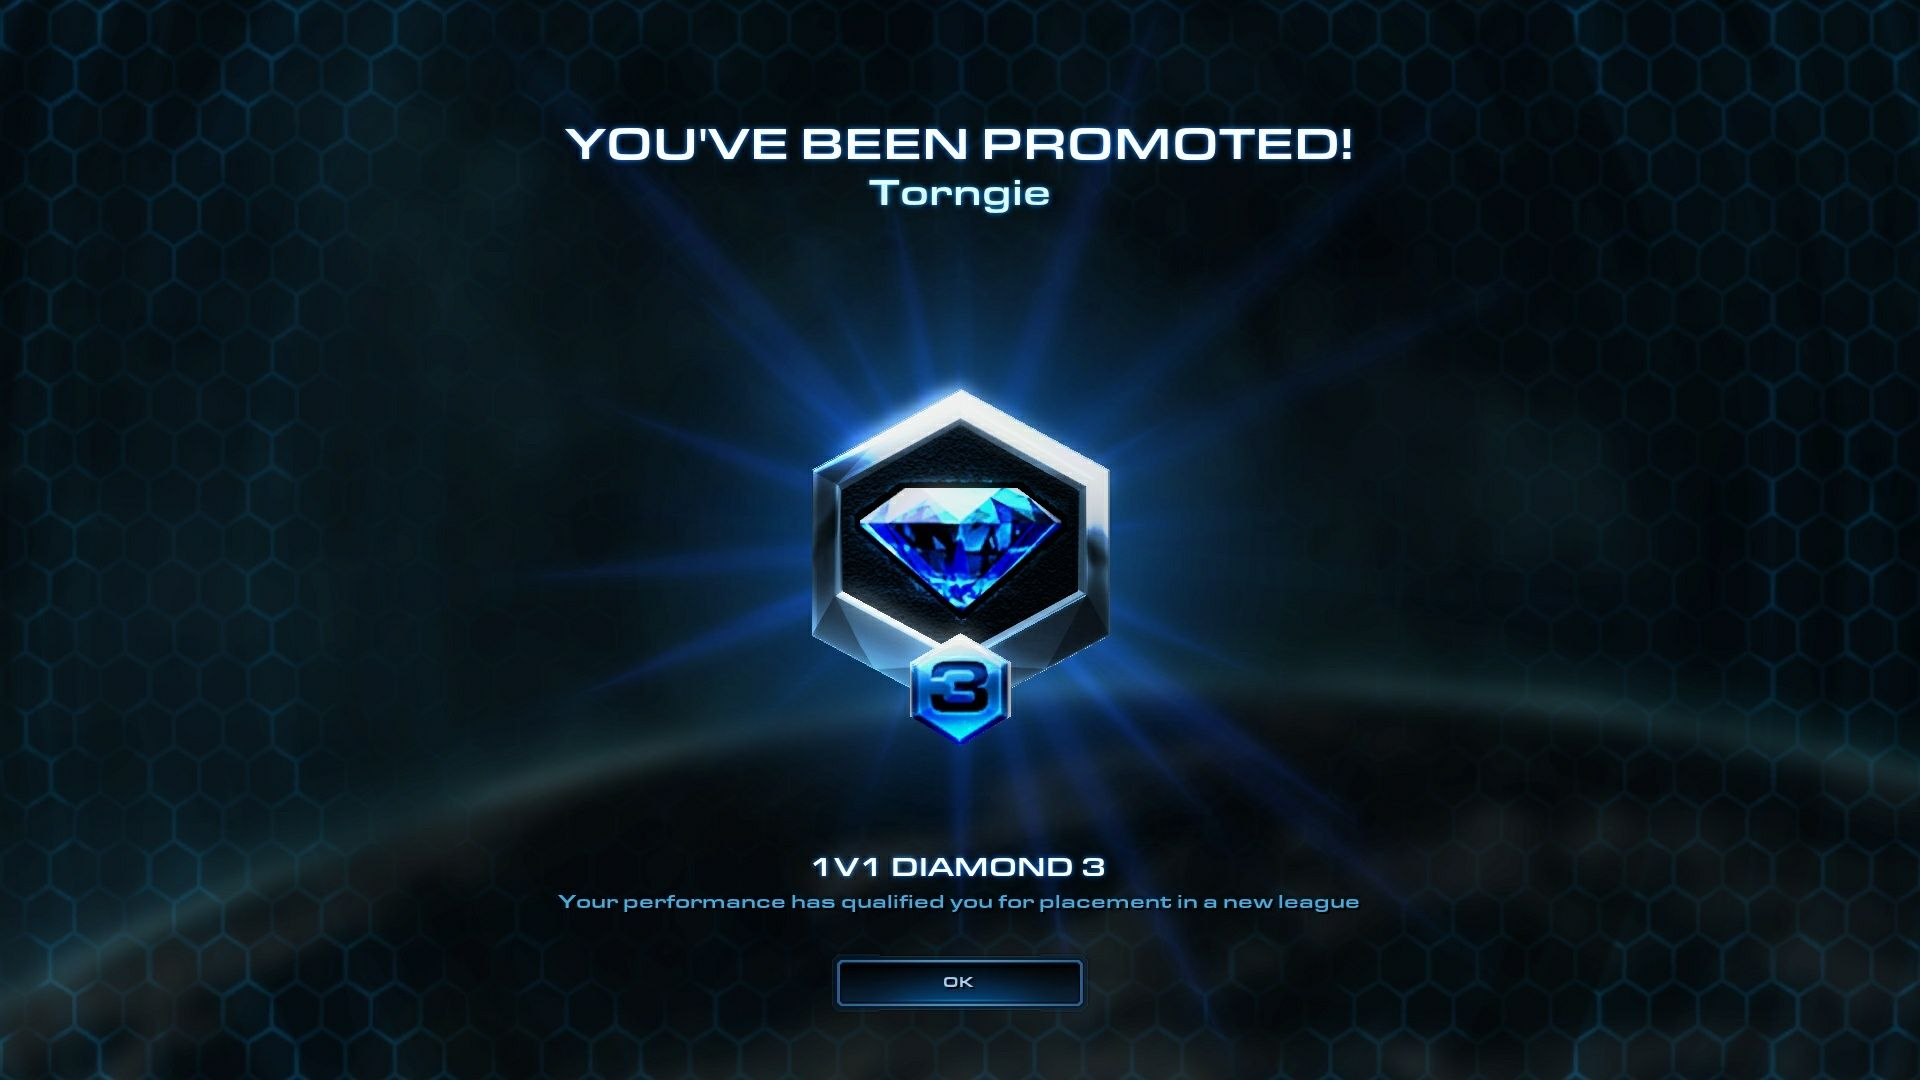 This is the highest ive ever been. Been playing since WoL im pretty stoked! #games #Starcraft #Starcraft2 #SC2 #gamingnews #blizzard